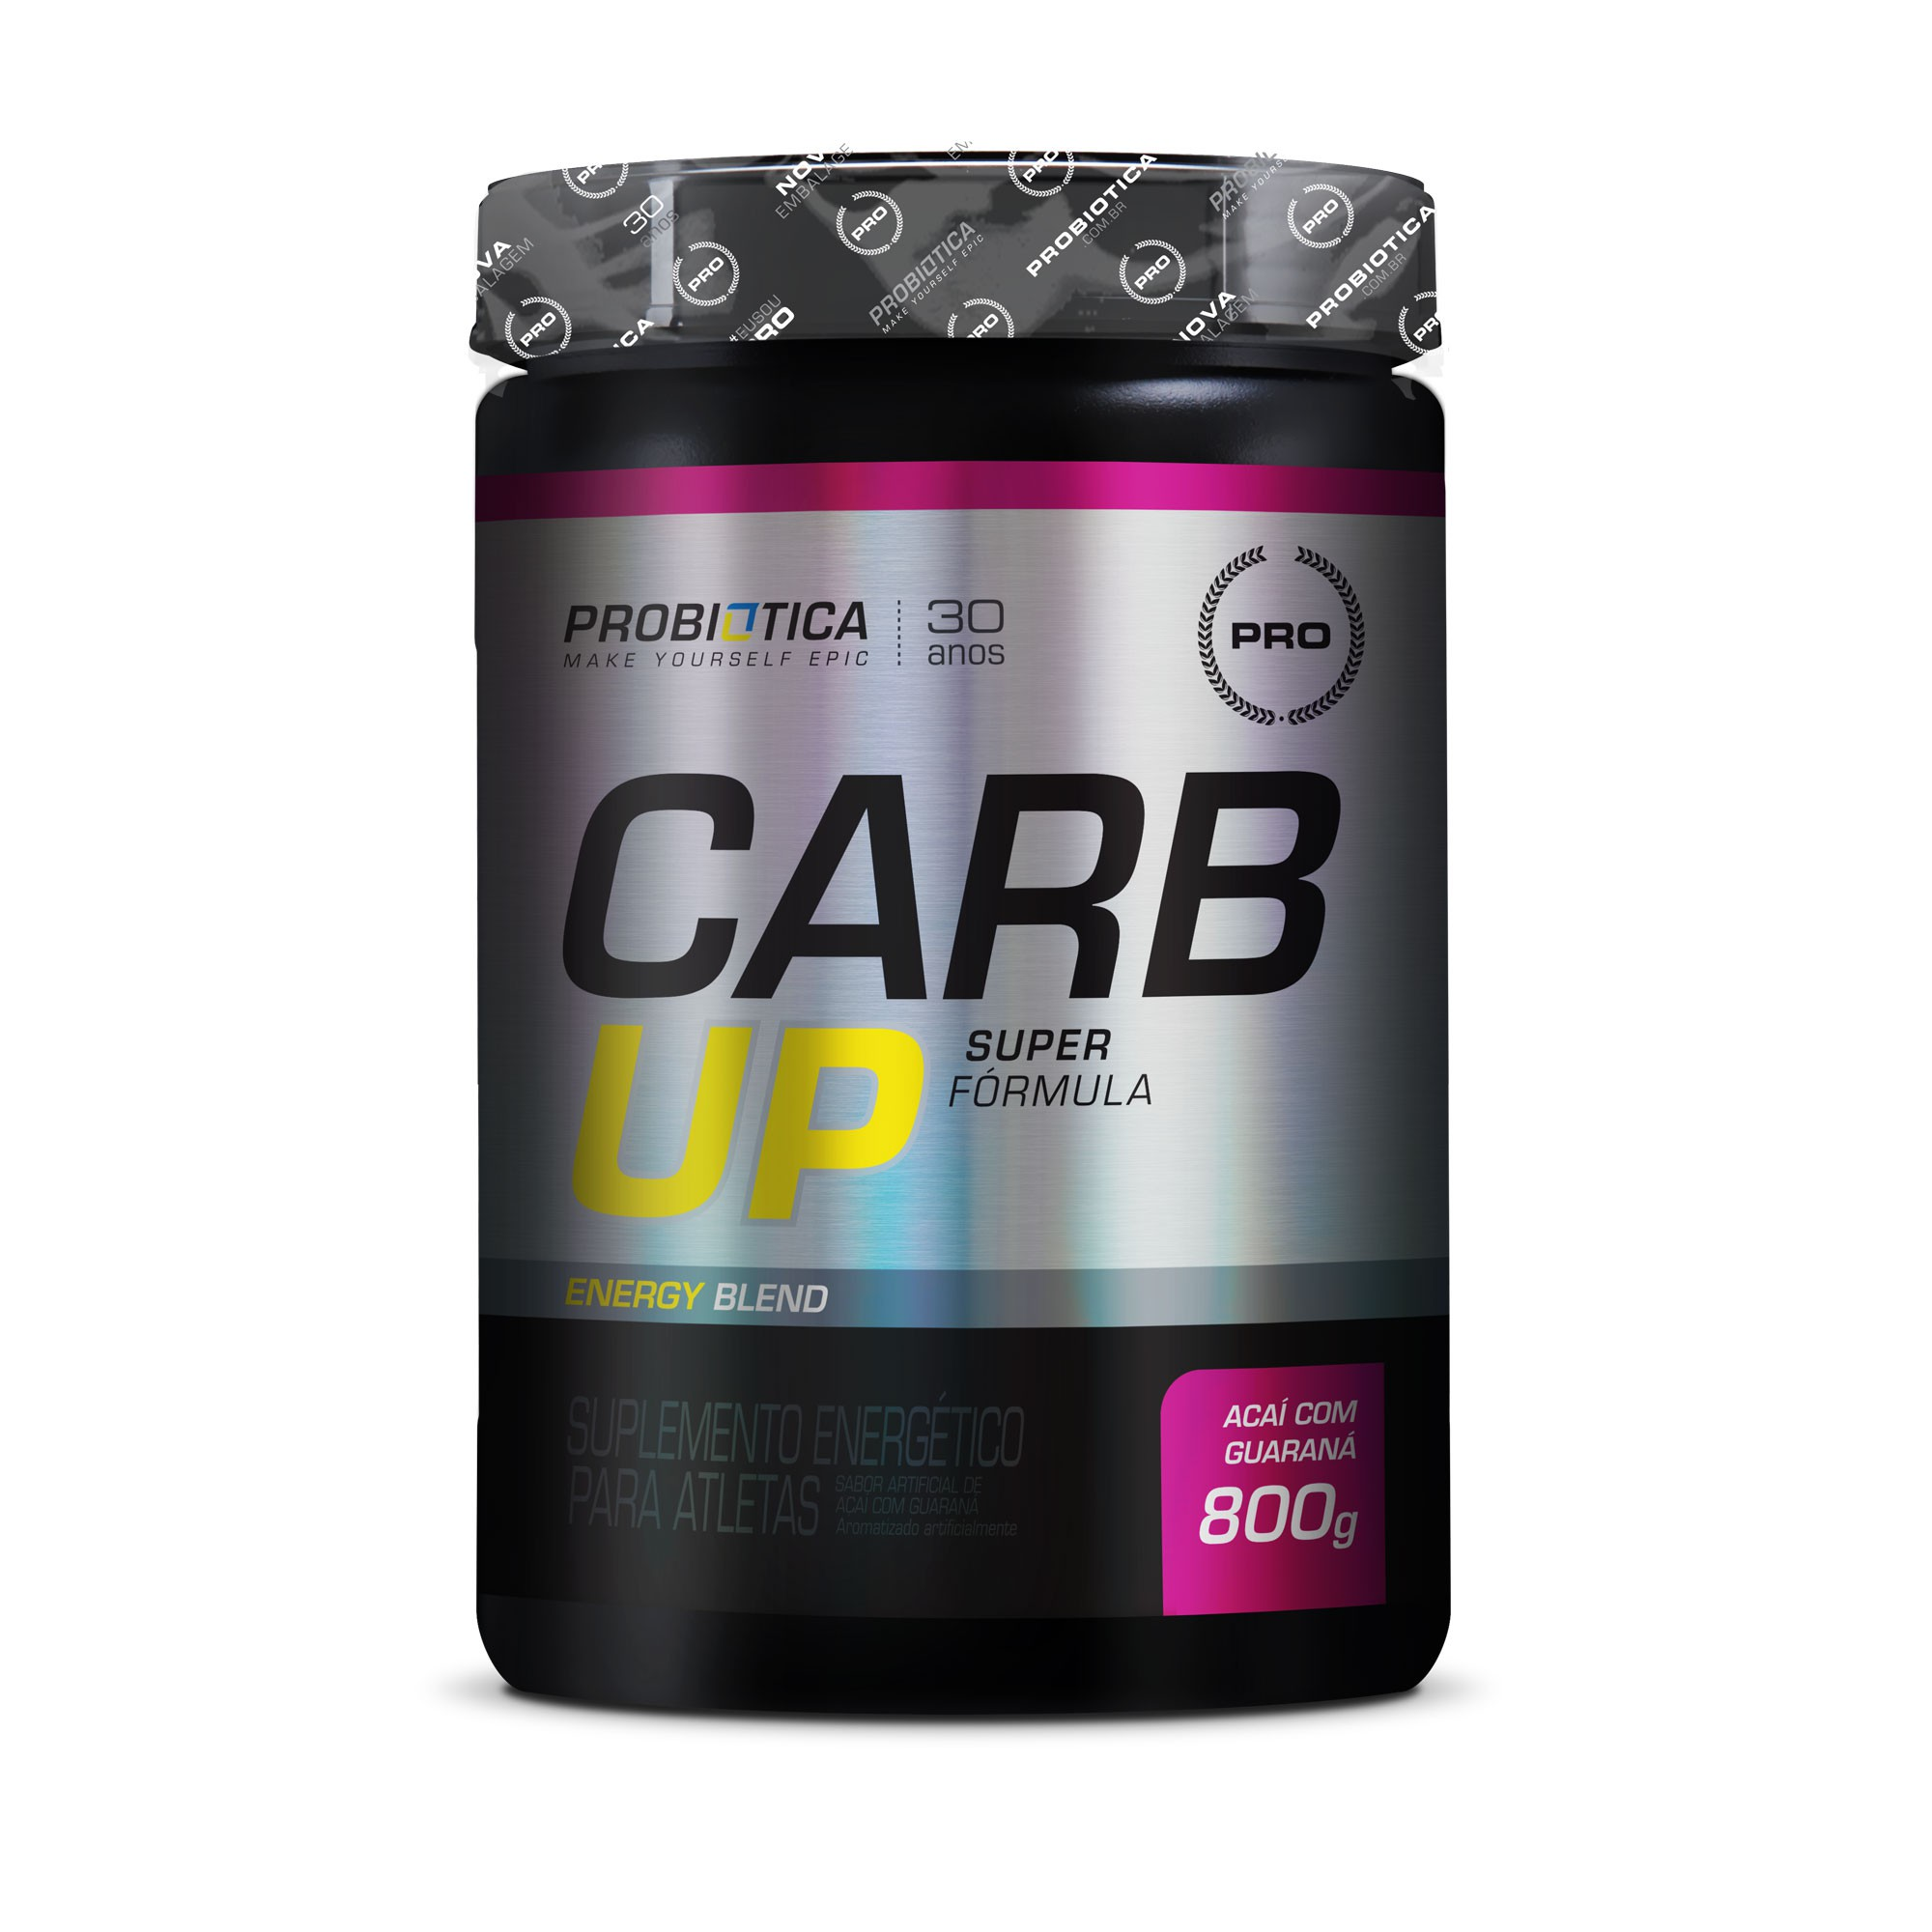 Carb up Super Fórmula Açai c/ guaraná  Probiotica 800g